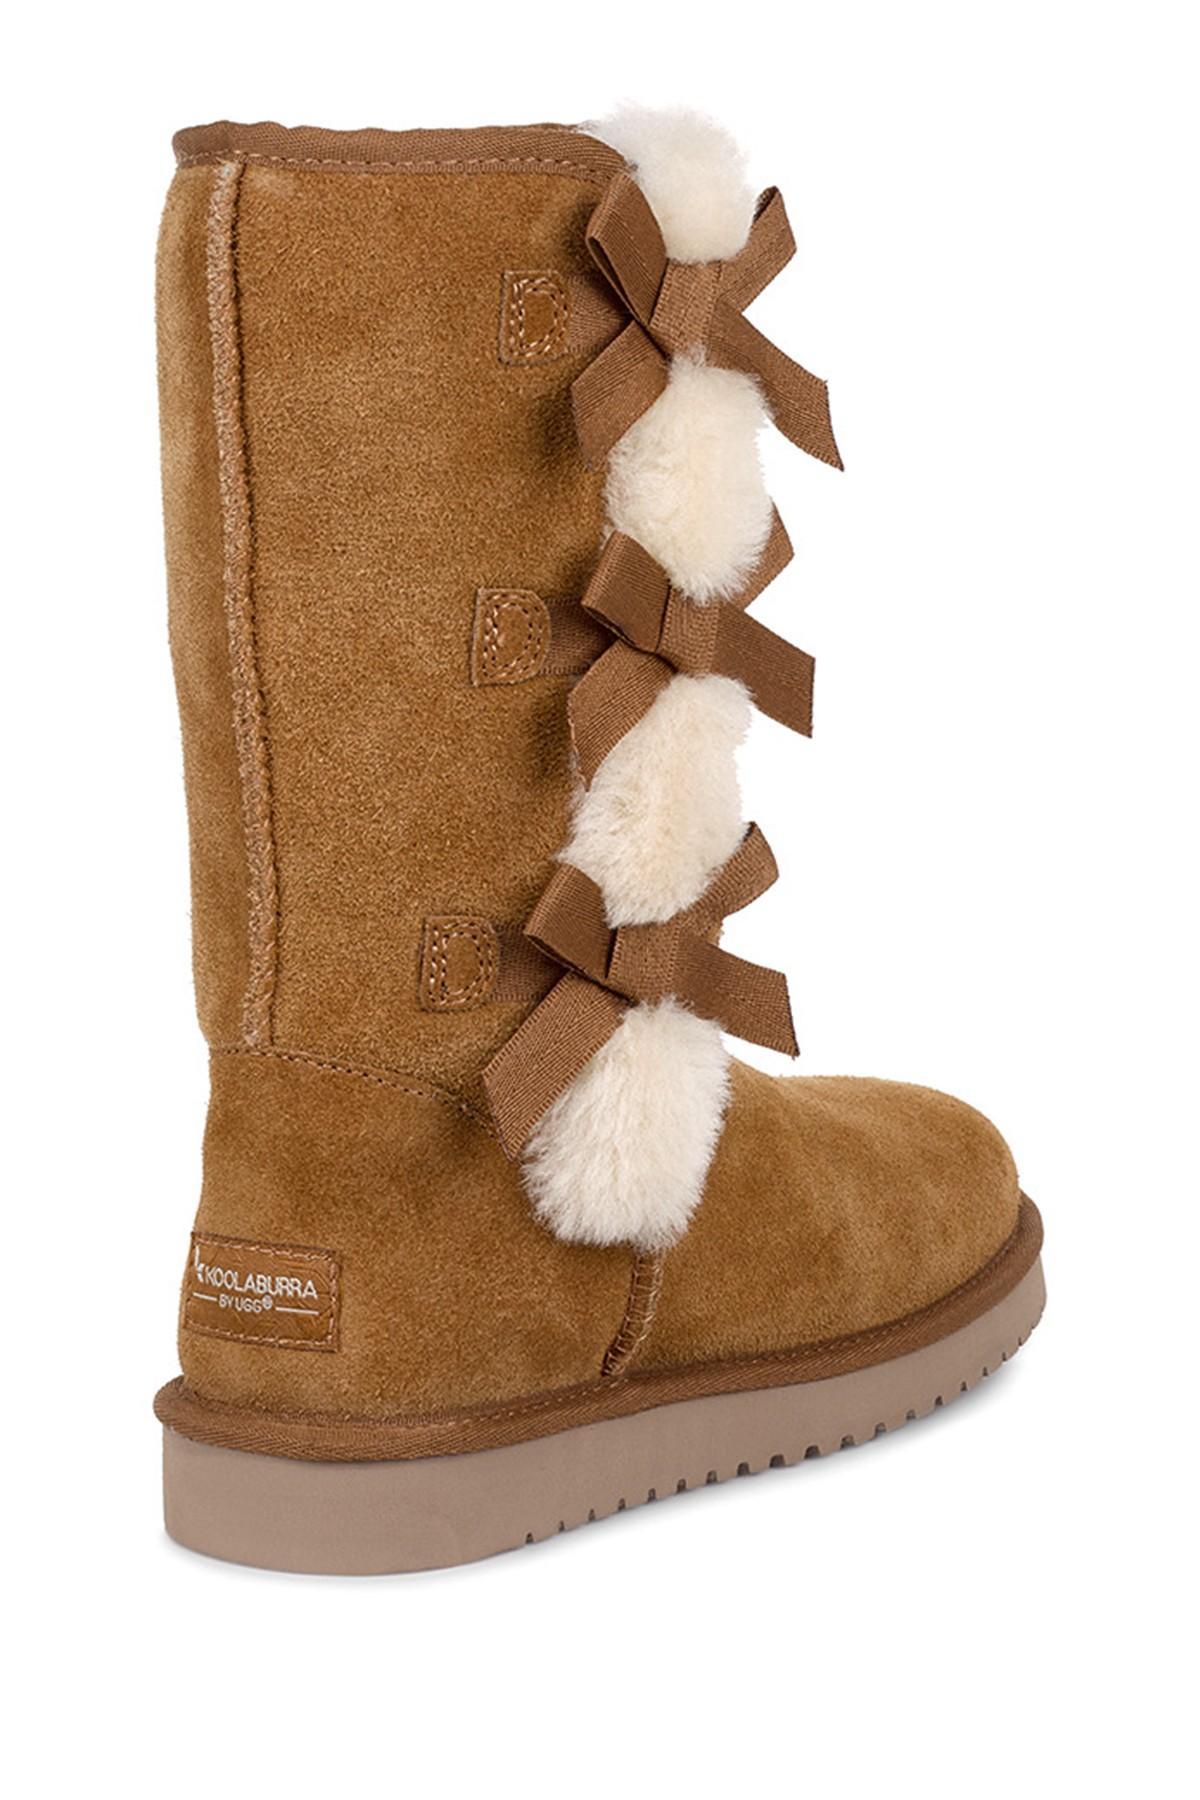 aabc375a483 Women's Brown Victoria Tall Genuine Dyed Shearling Trim & Faux Fur Boot